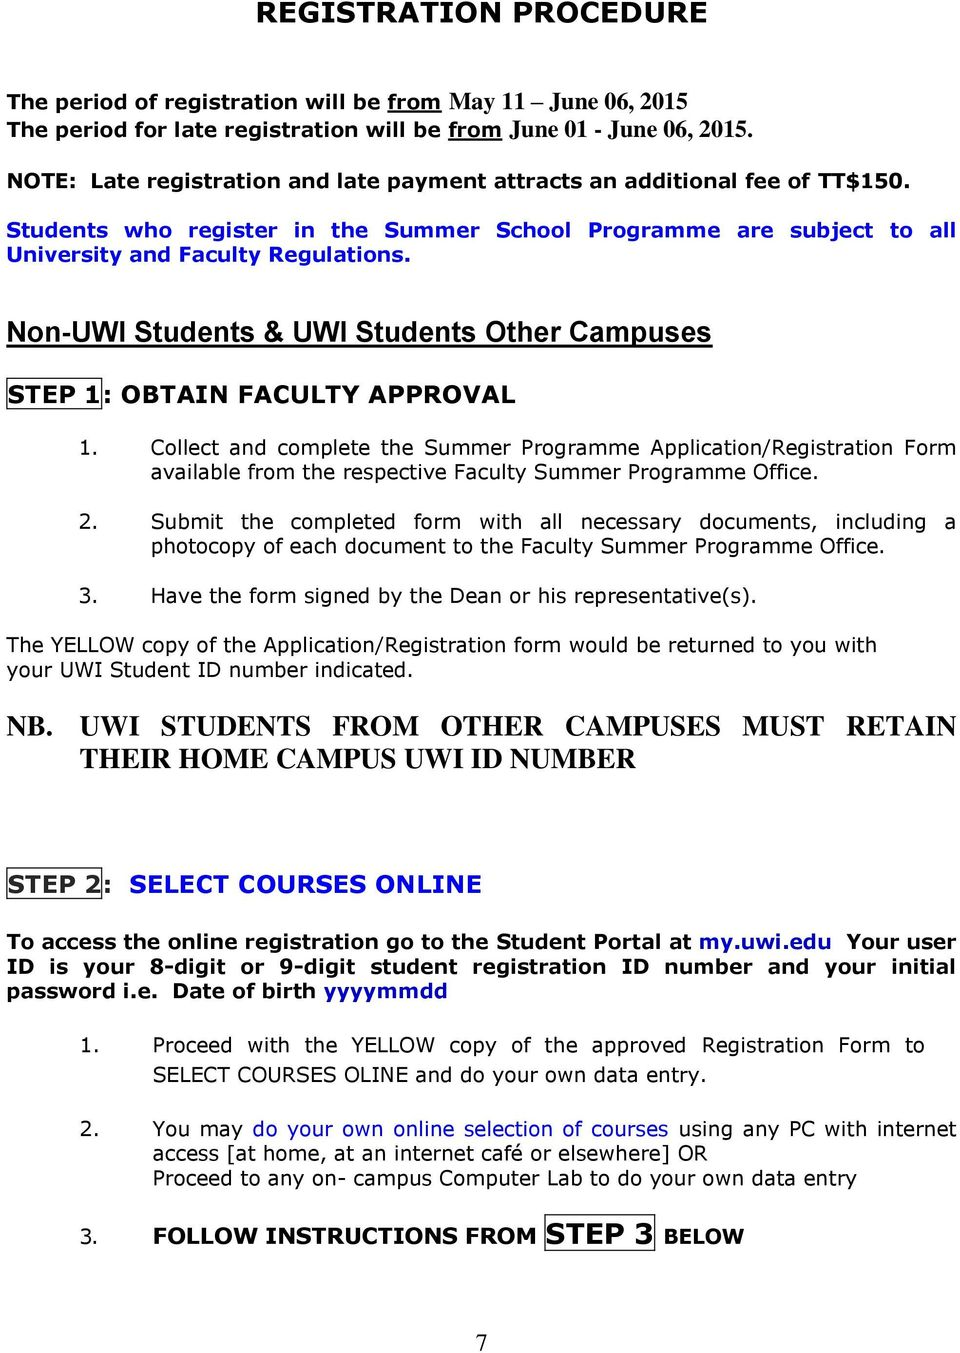 Non-UWI Students & UWI Students Other Campuses STEP 1: OBTAIN FACULTY APPROVAL 1.